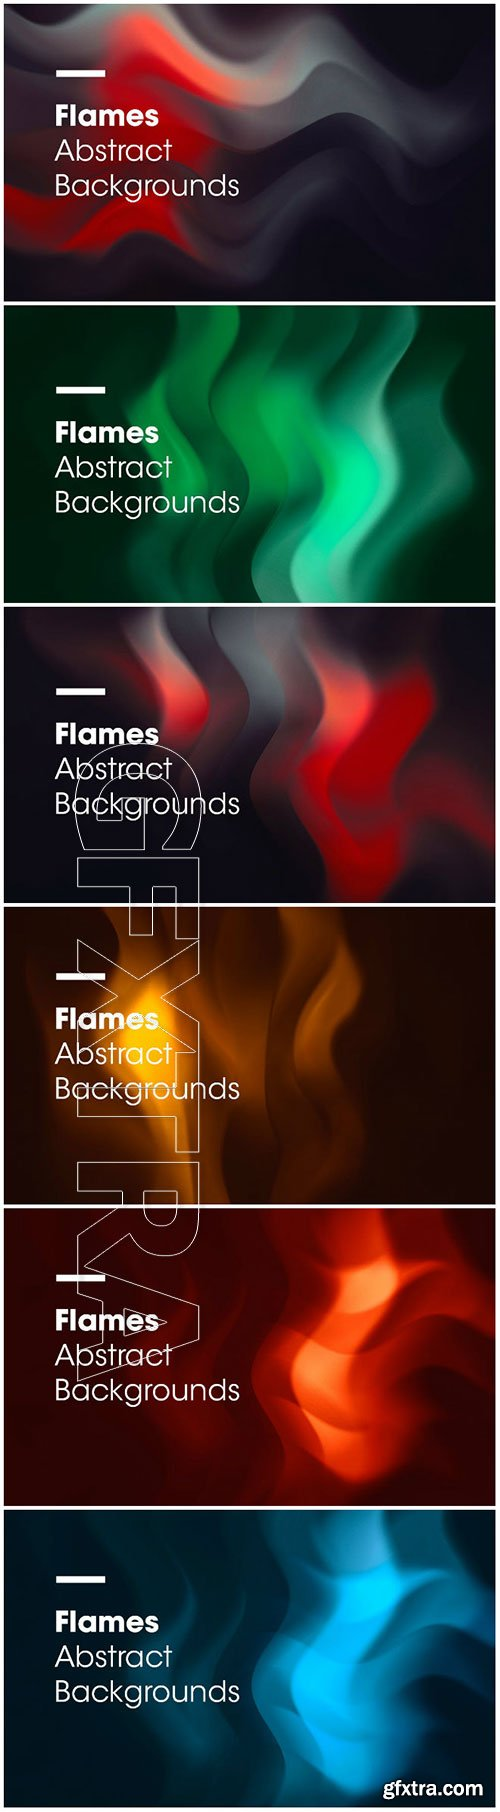 Flames Abstract Backgrounds